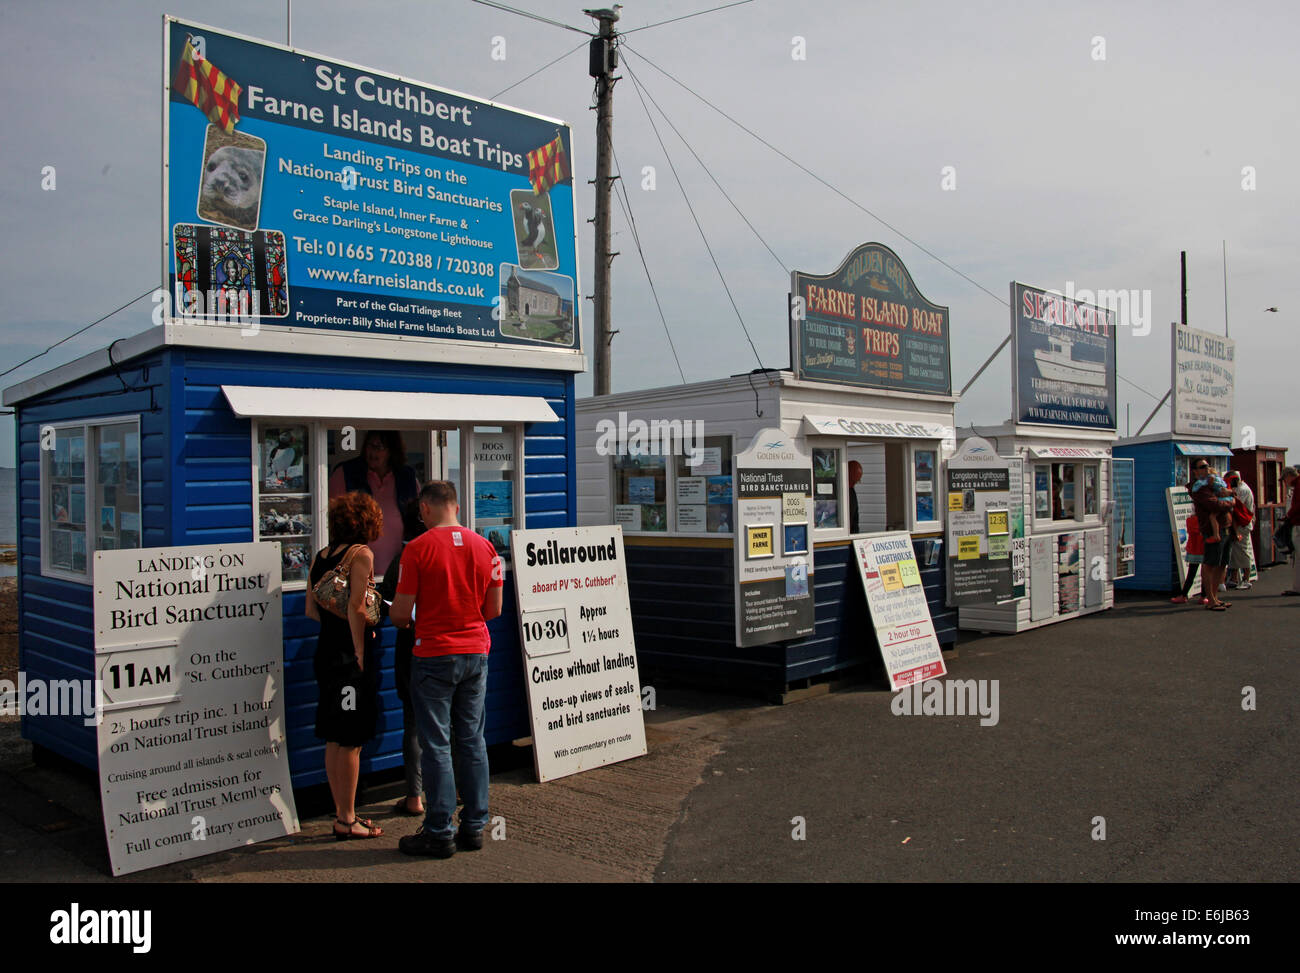 St Cuthbert boat Tickets being sold from sheds at Seahouses, for Farne Island trips, NE England, UK - Stock Image